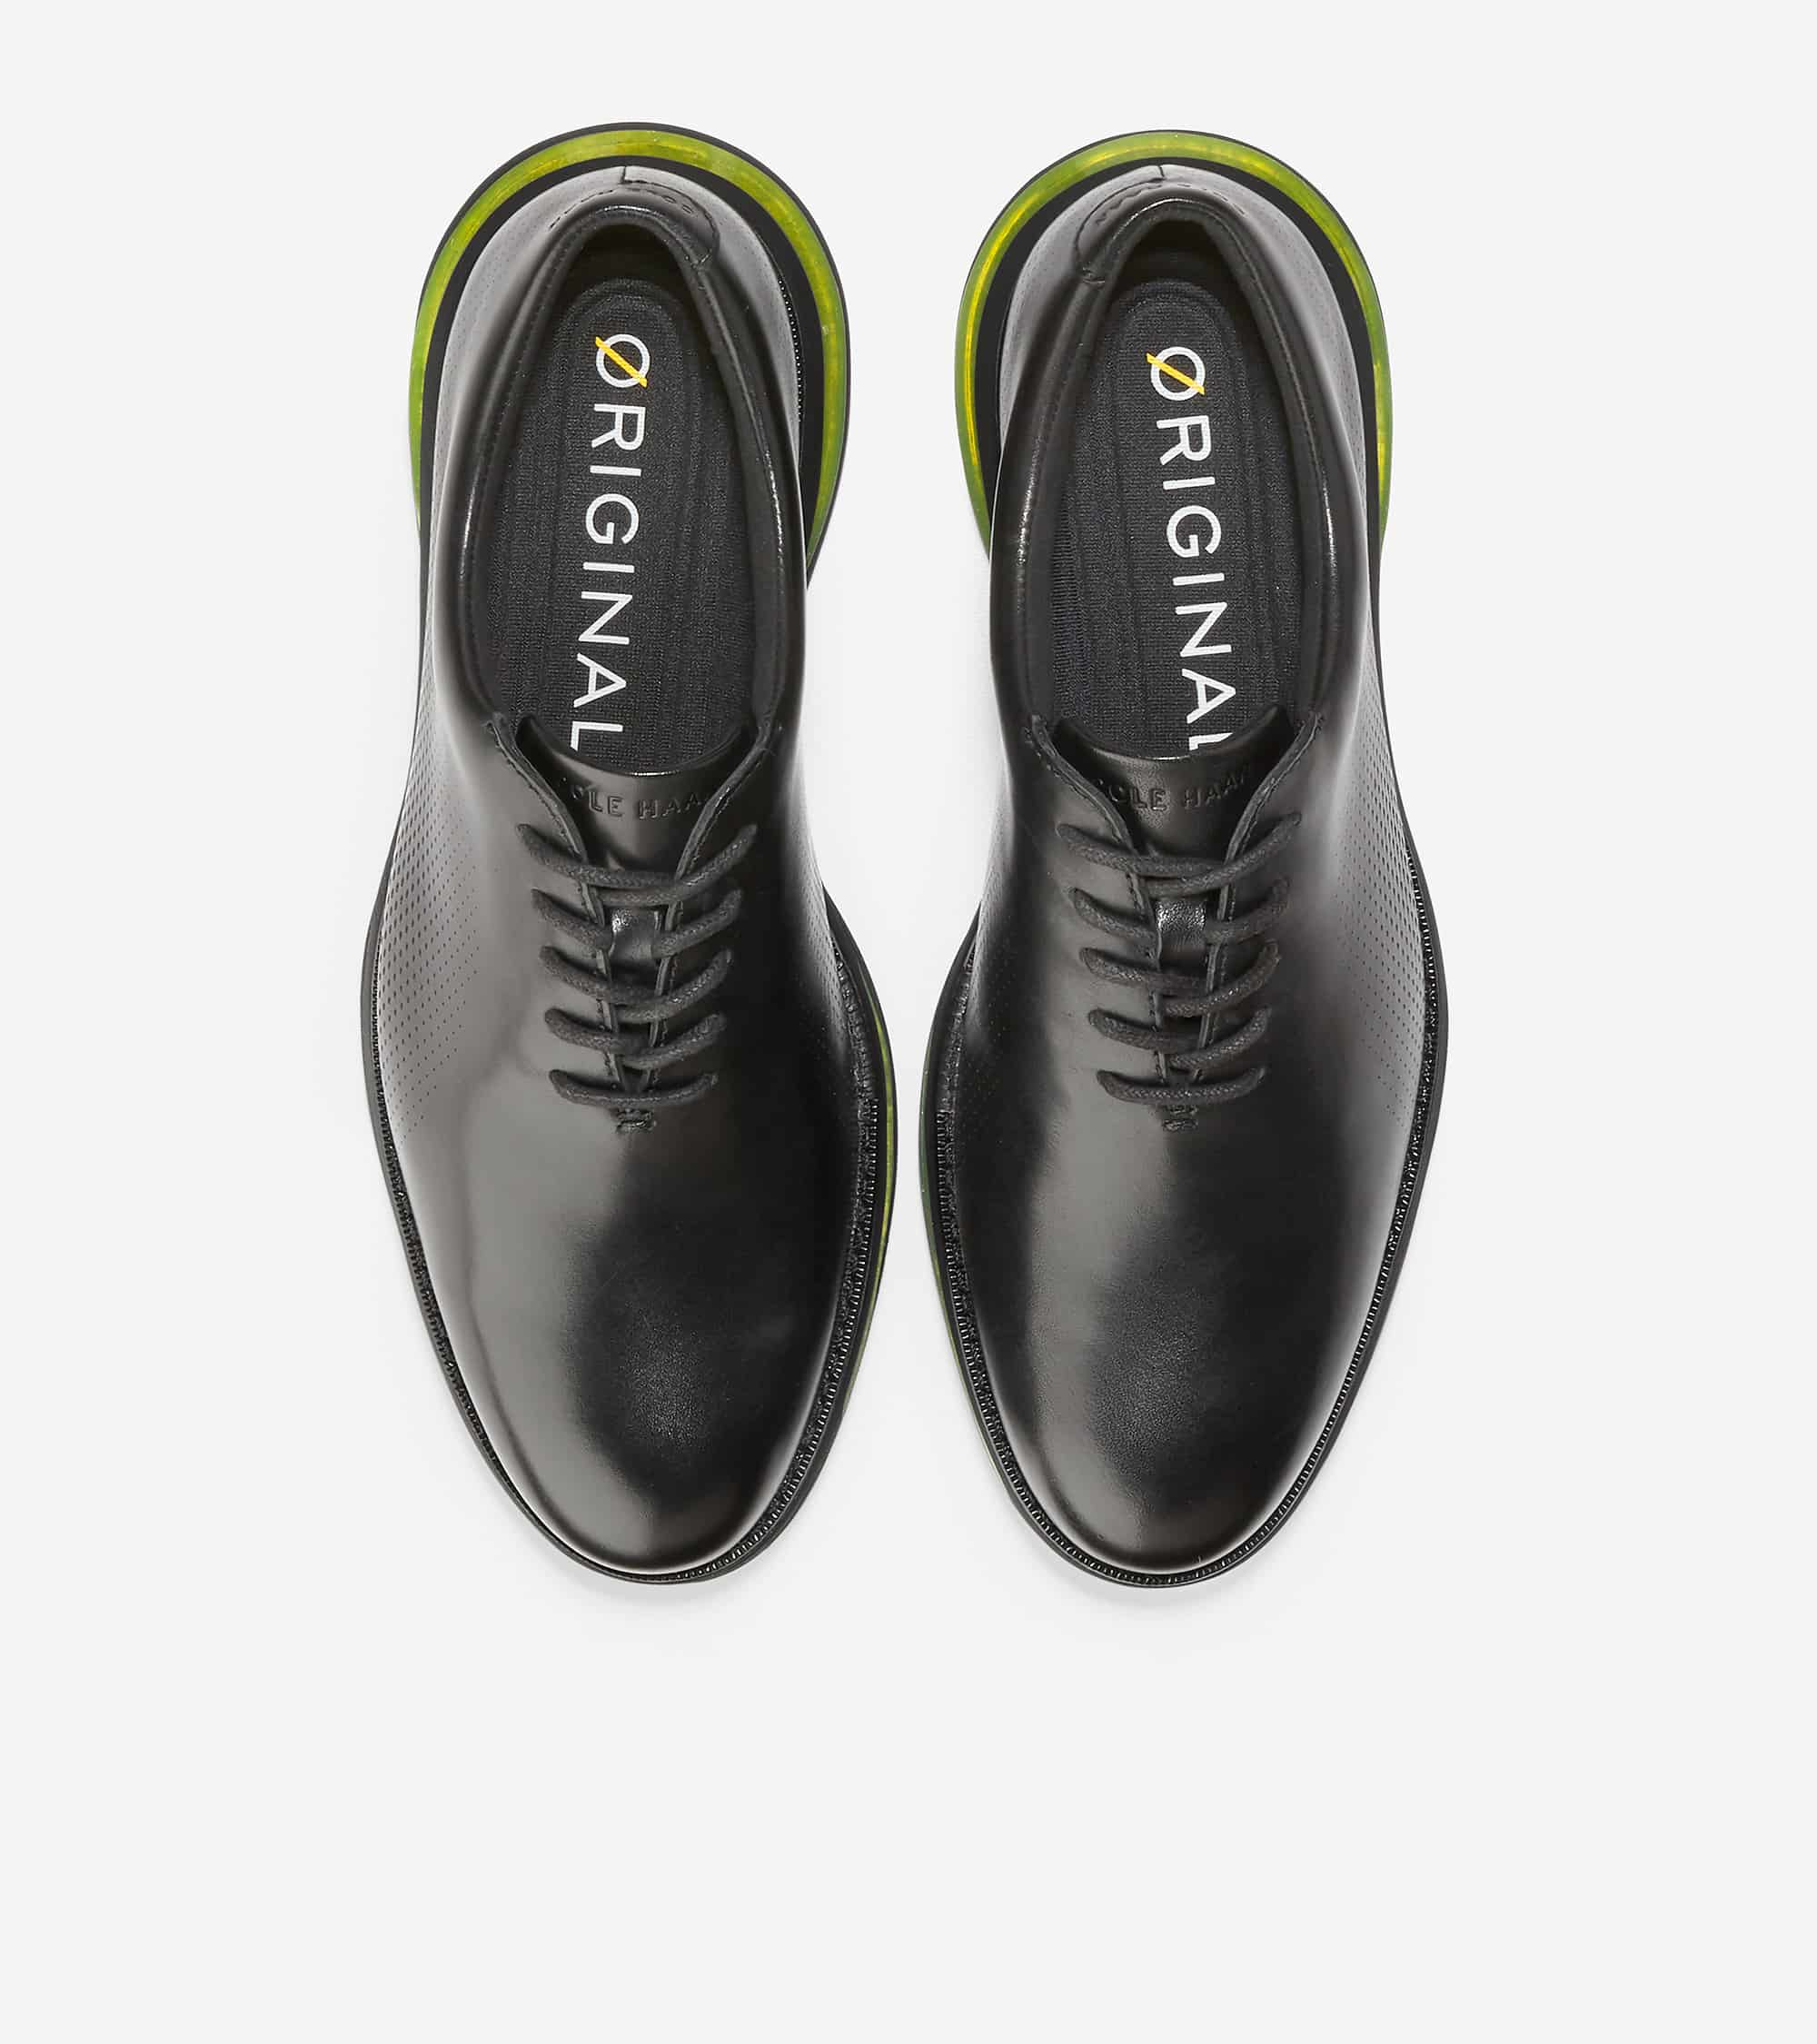 Cole Haan Øriginalgrand Cloudfeel Energy Twin Wc Ox Black/Black-Safety Yellow